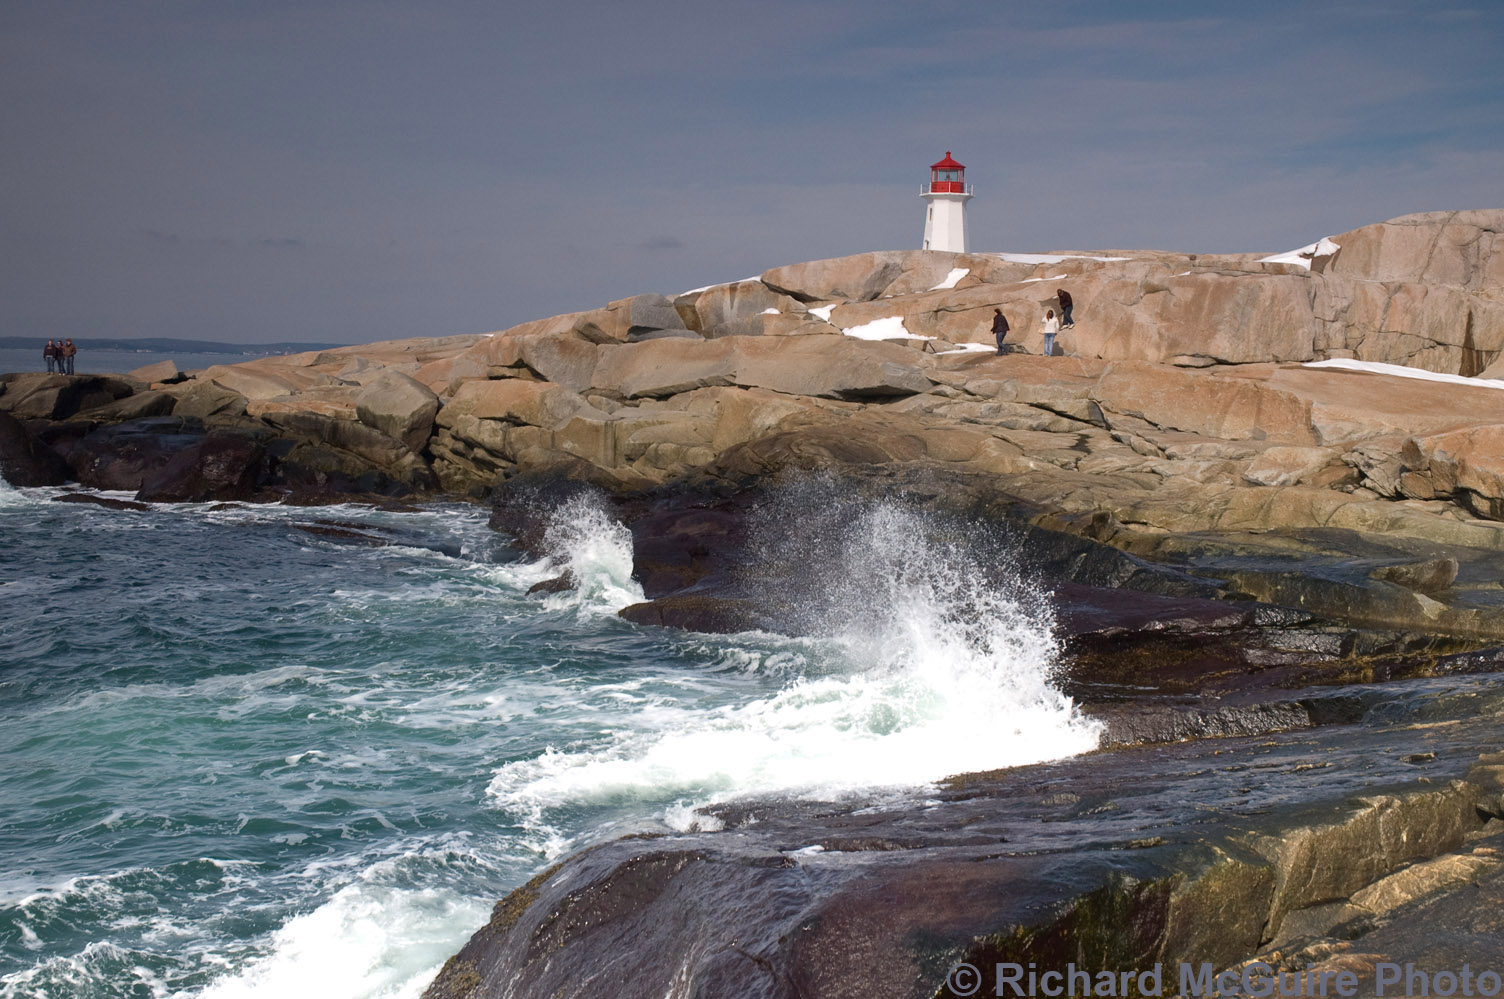 Rocks and Lighthouse, Peggy's Cove, Nova Scotia